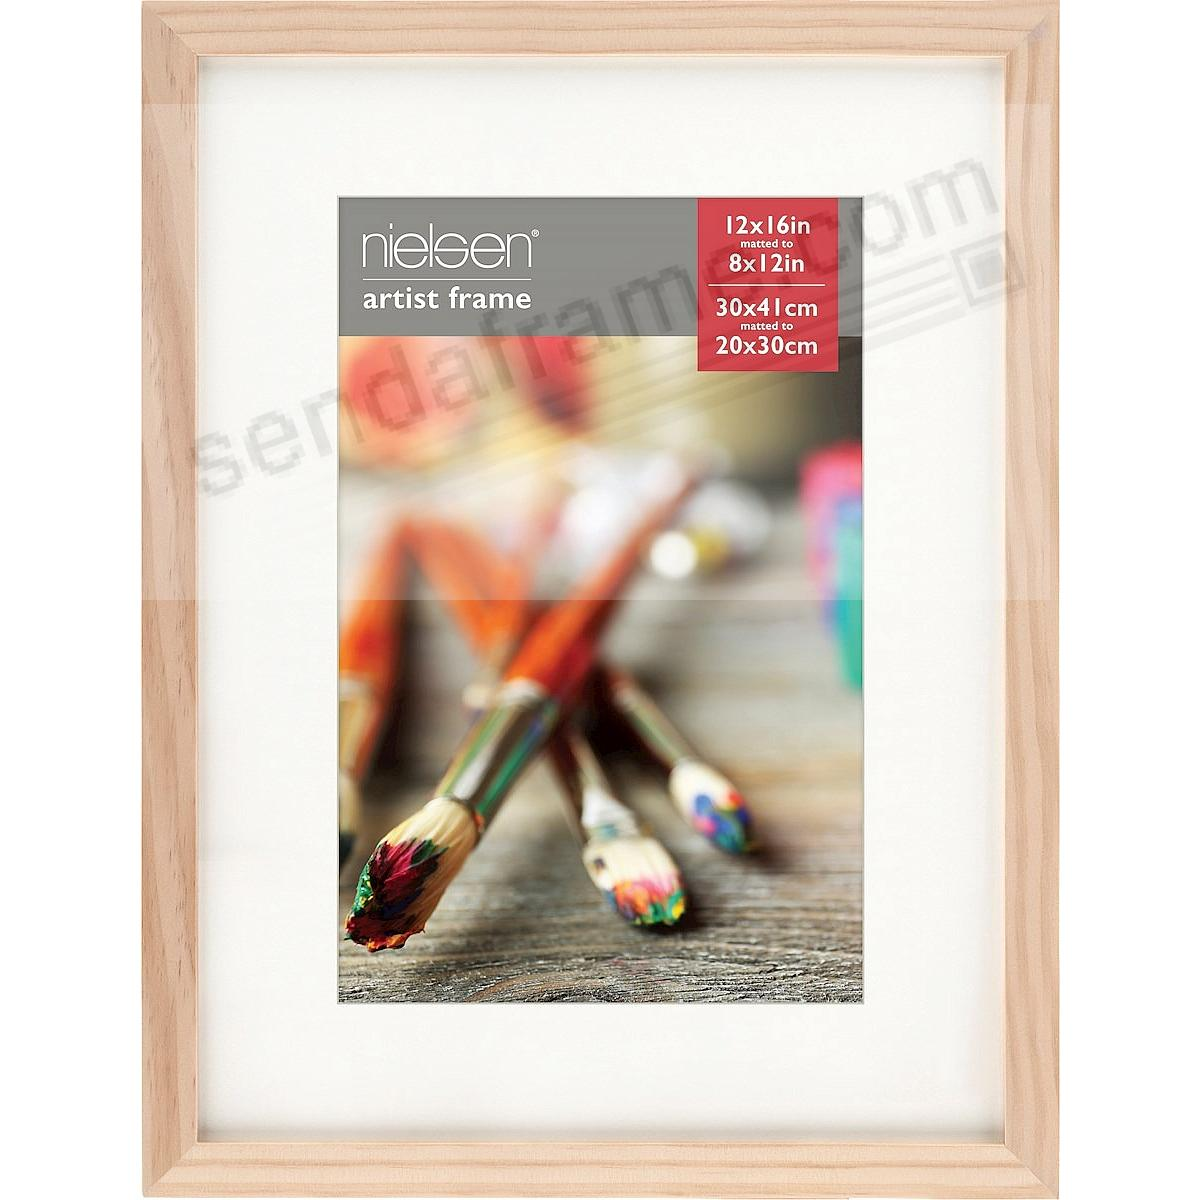 ash natural gallery canvas depth matted wood frame 12x168x12 by nielsen bainbridge